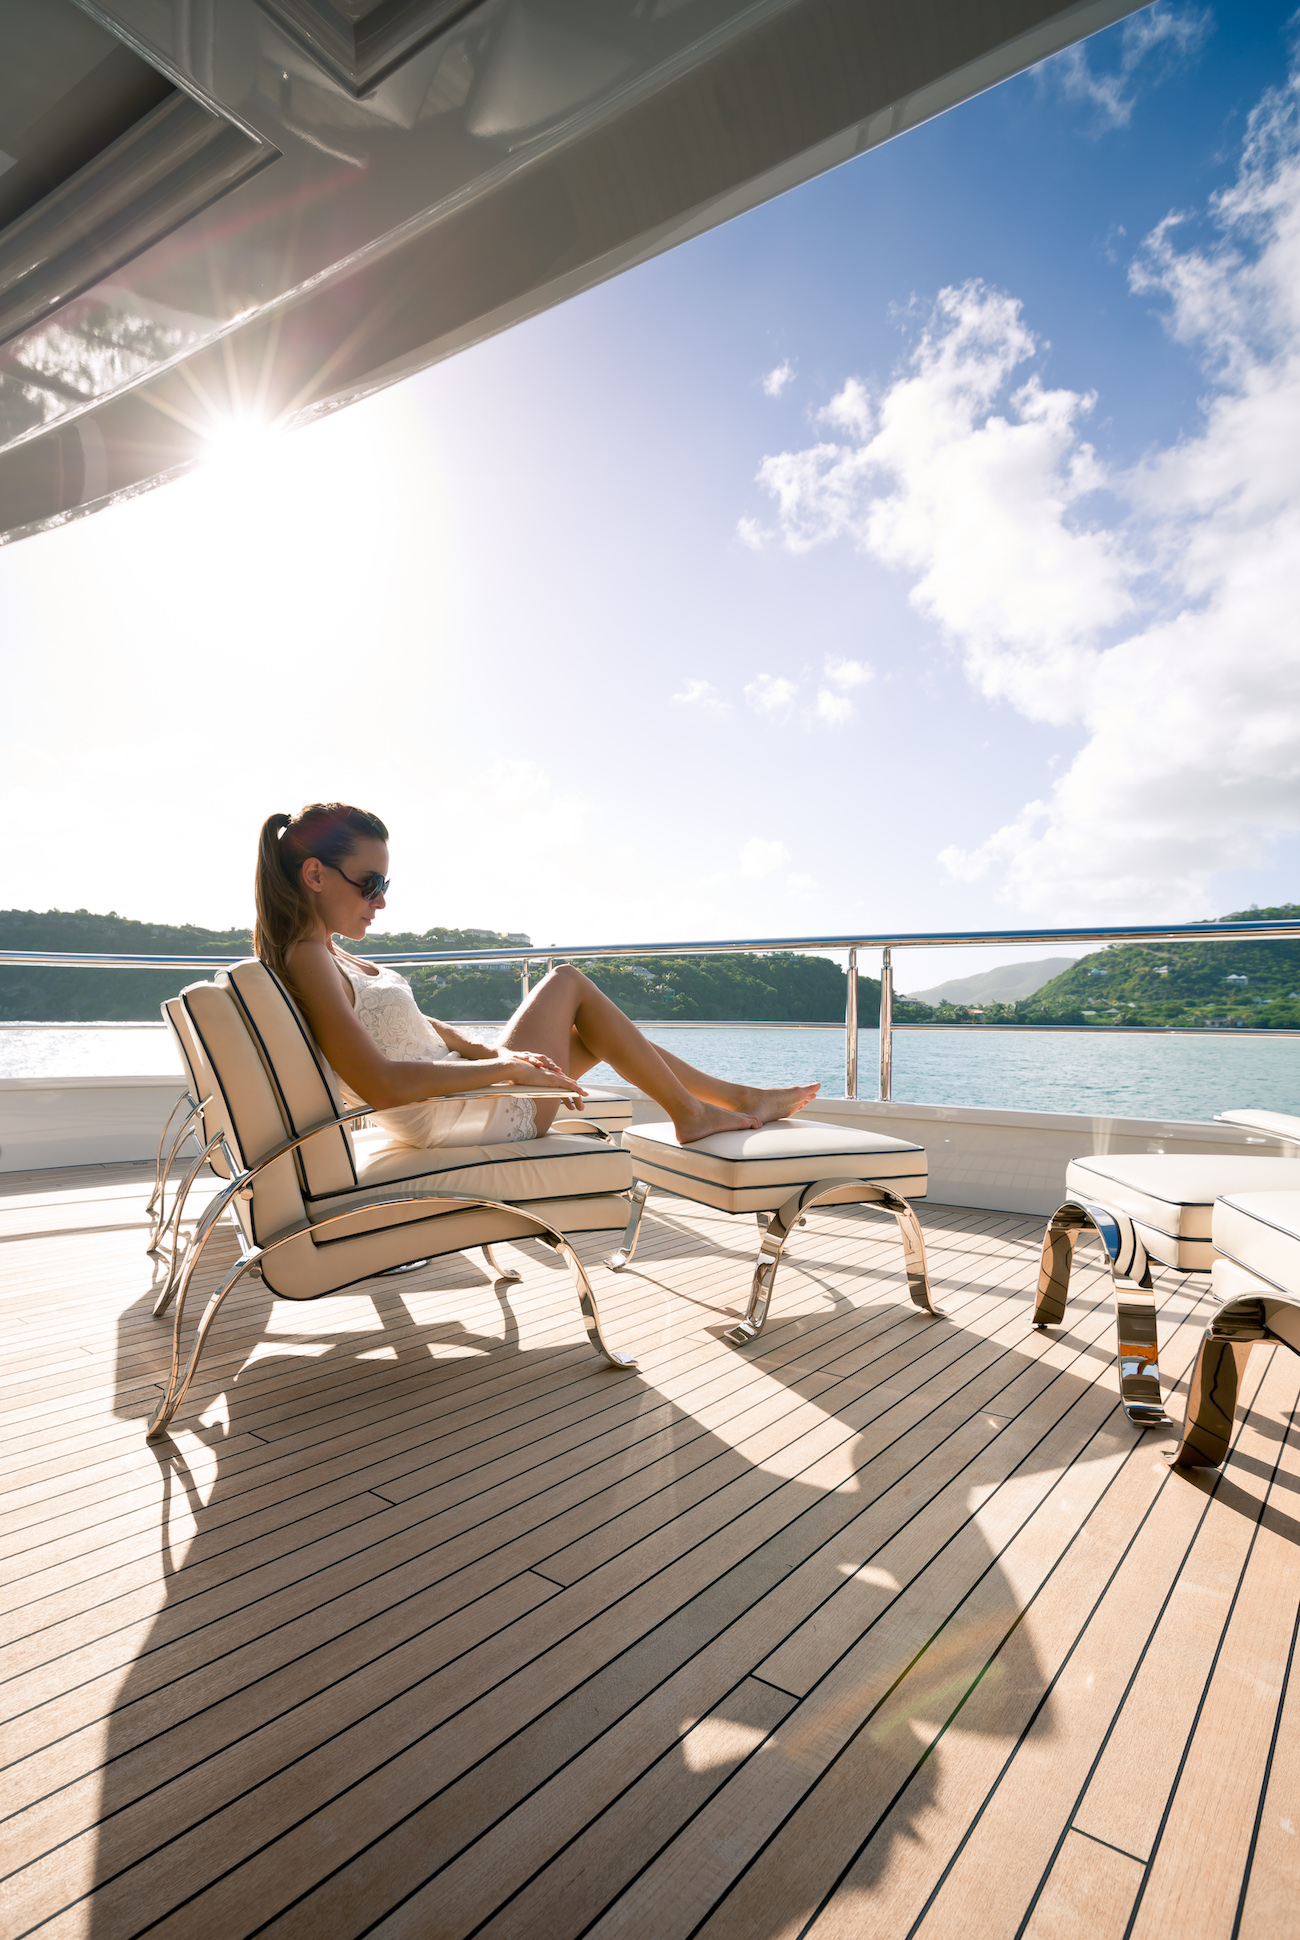 Taking In The Sun On The Aft Deck